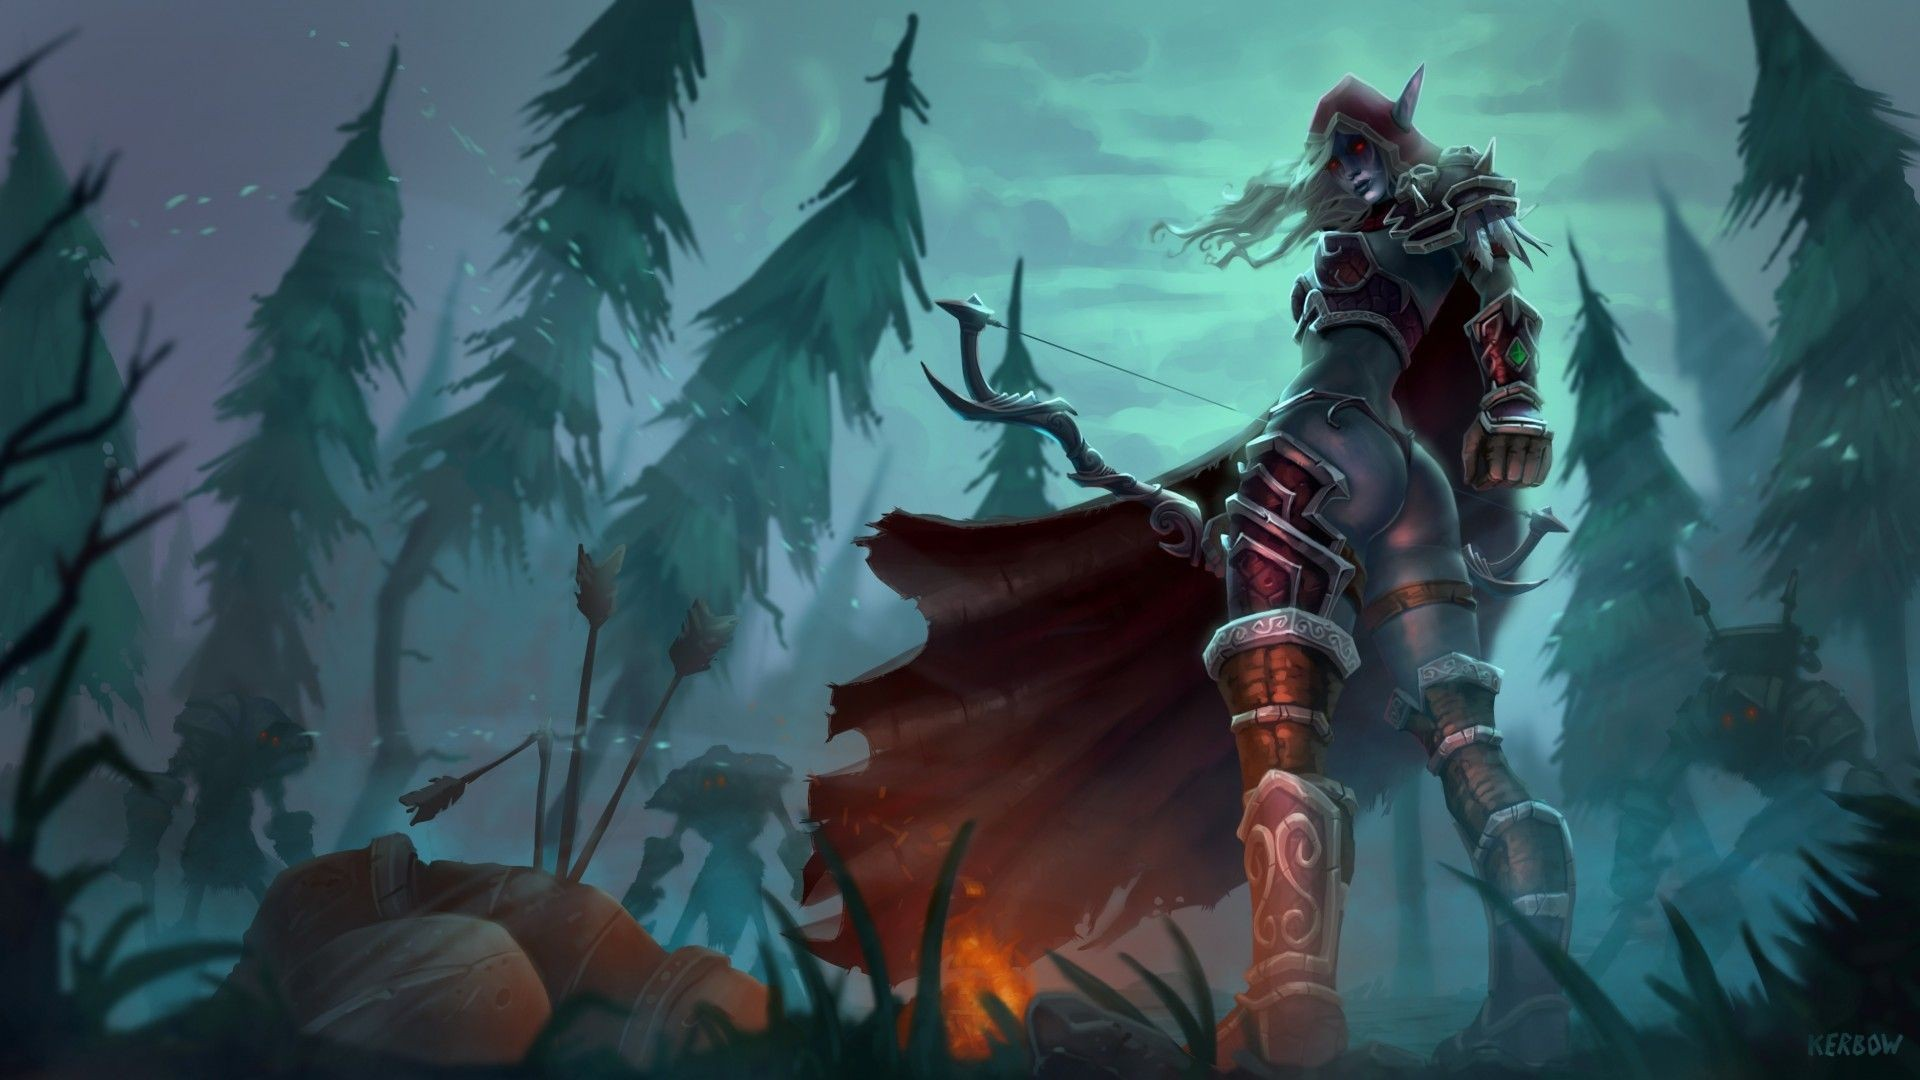 Sylvanas Wallpaper 1 Download Free Cool Full HD Backgrounds For